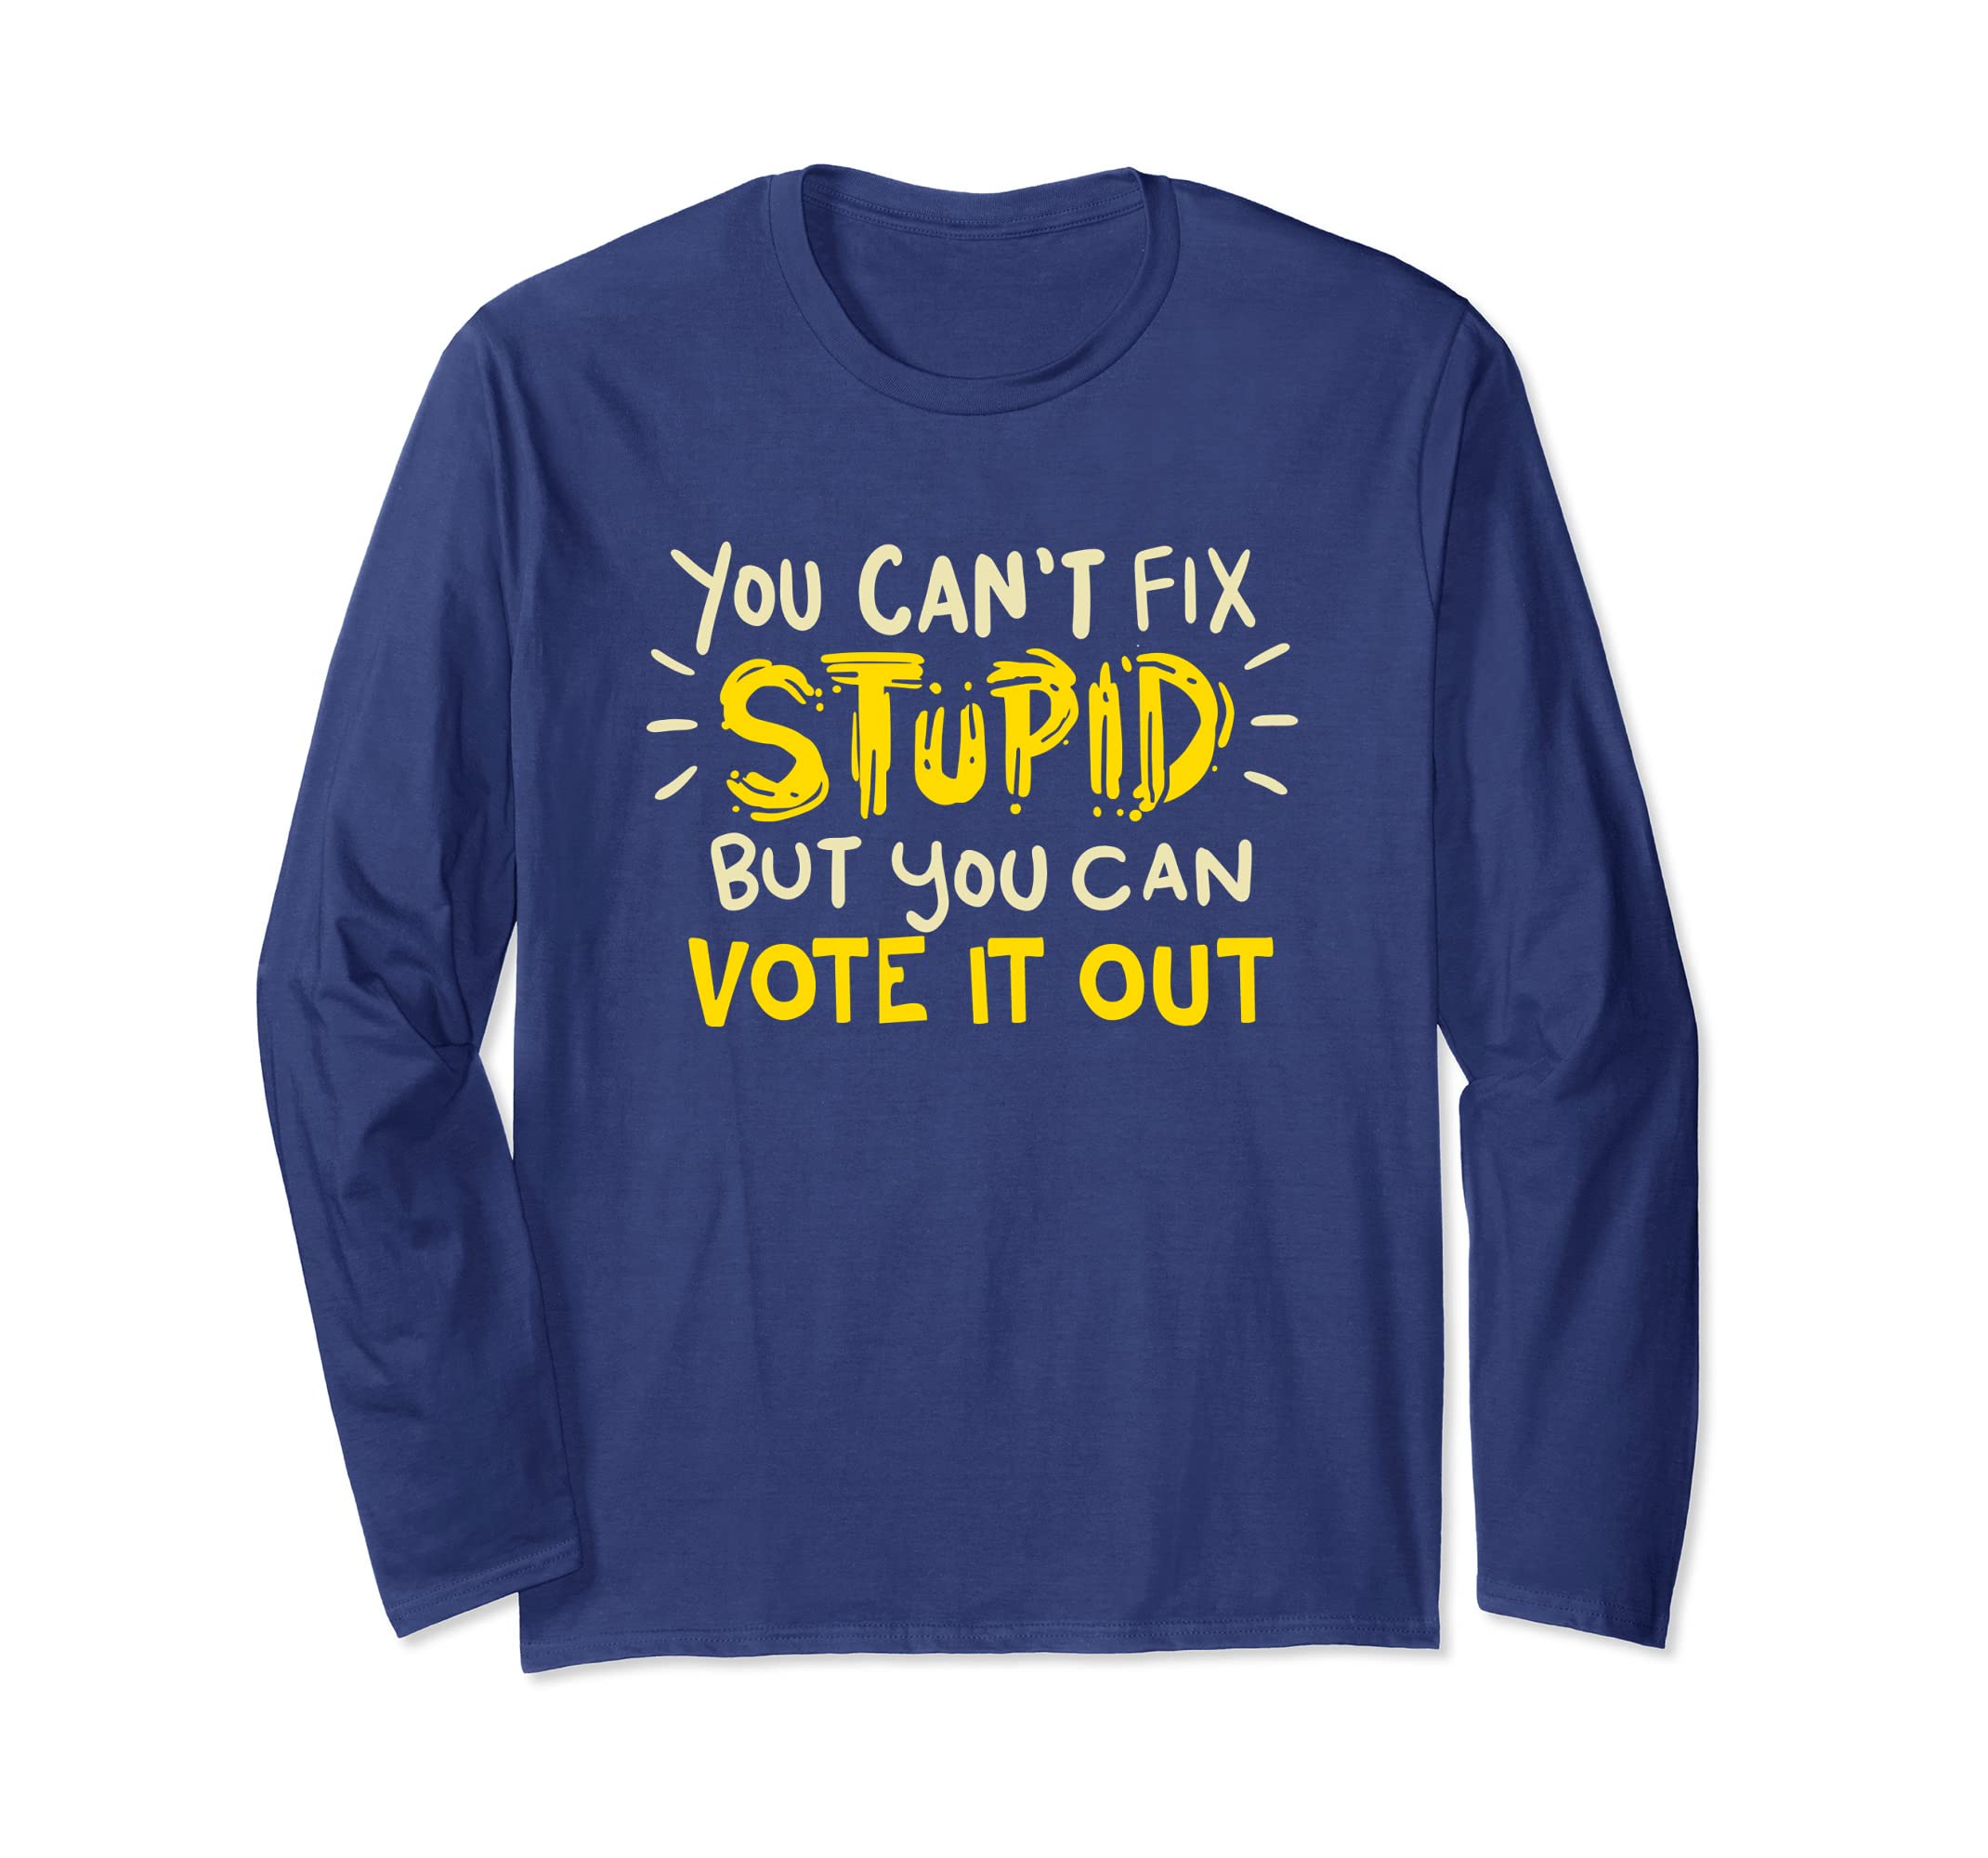 Can't Fix Stupid But You Can Vote It Out T Shirt Political-azvn